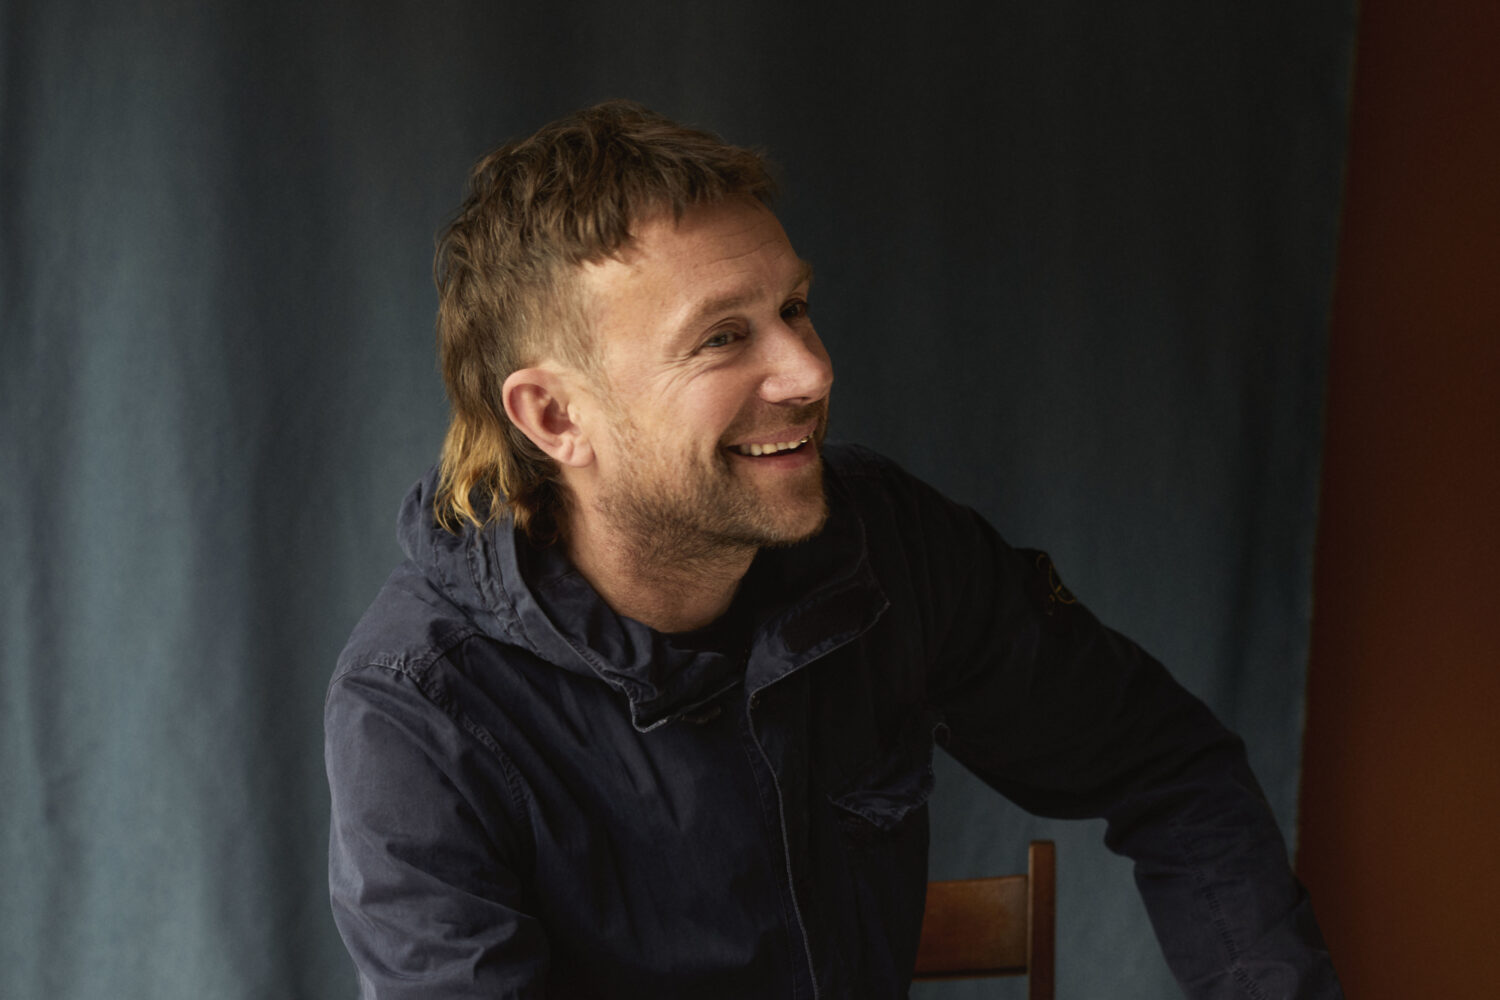 Damon Albarn unveils new track 'Particles'